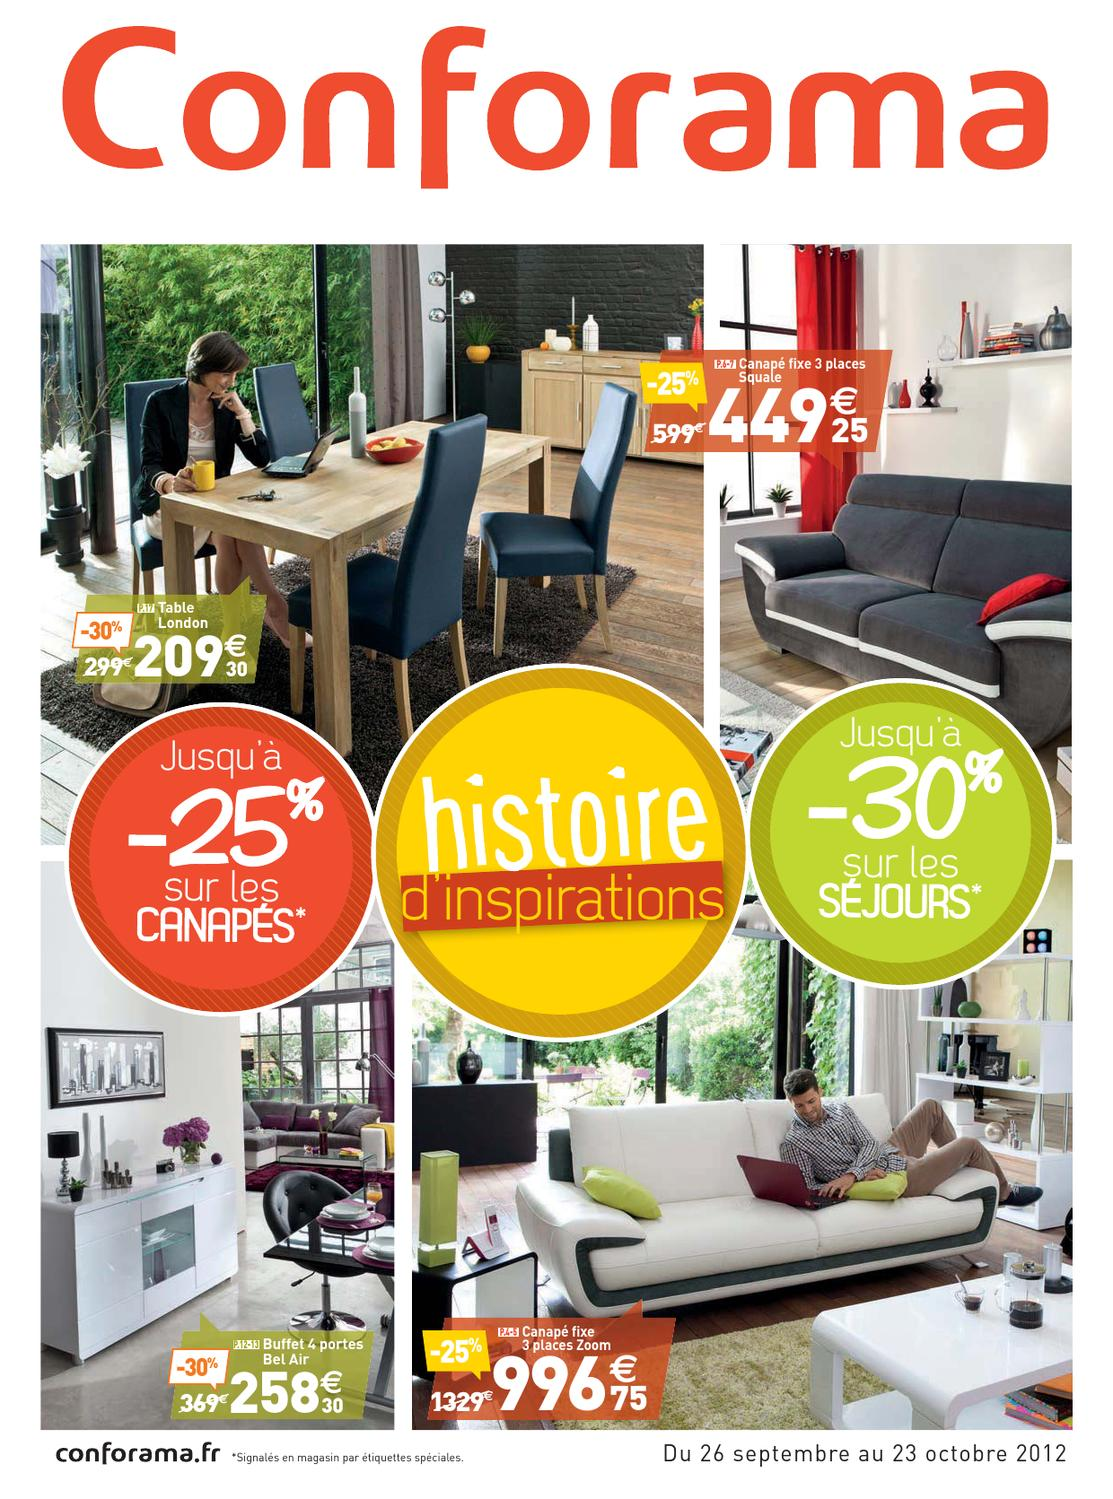 Conforama catalogue26 septembre 2012 by PromoCatalogues.com ...